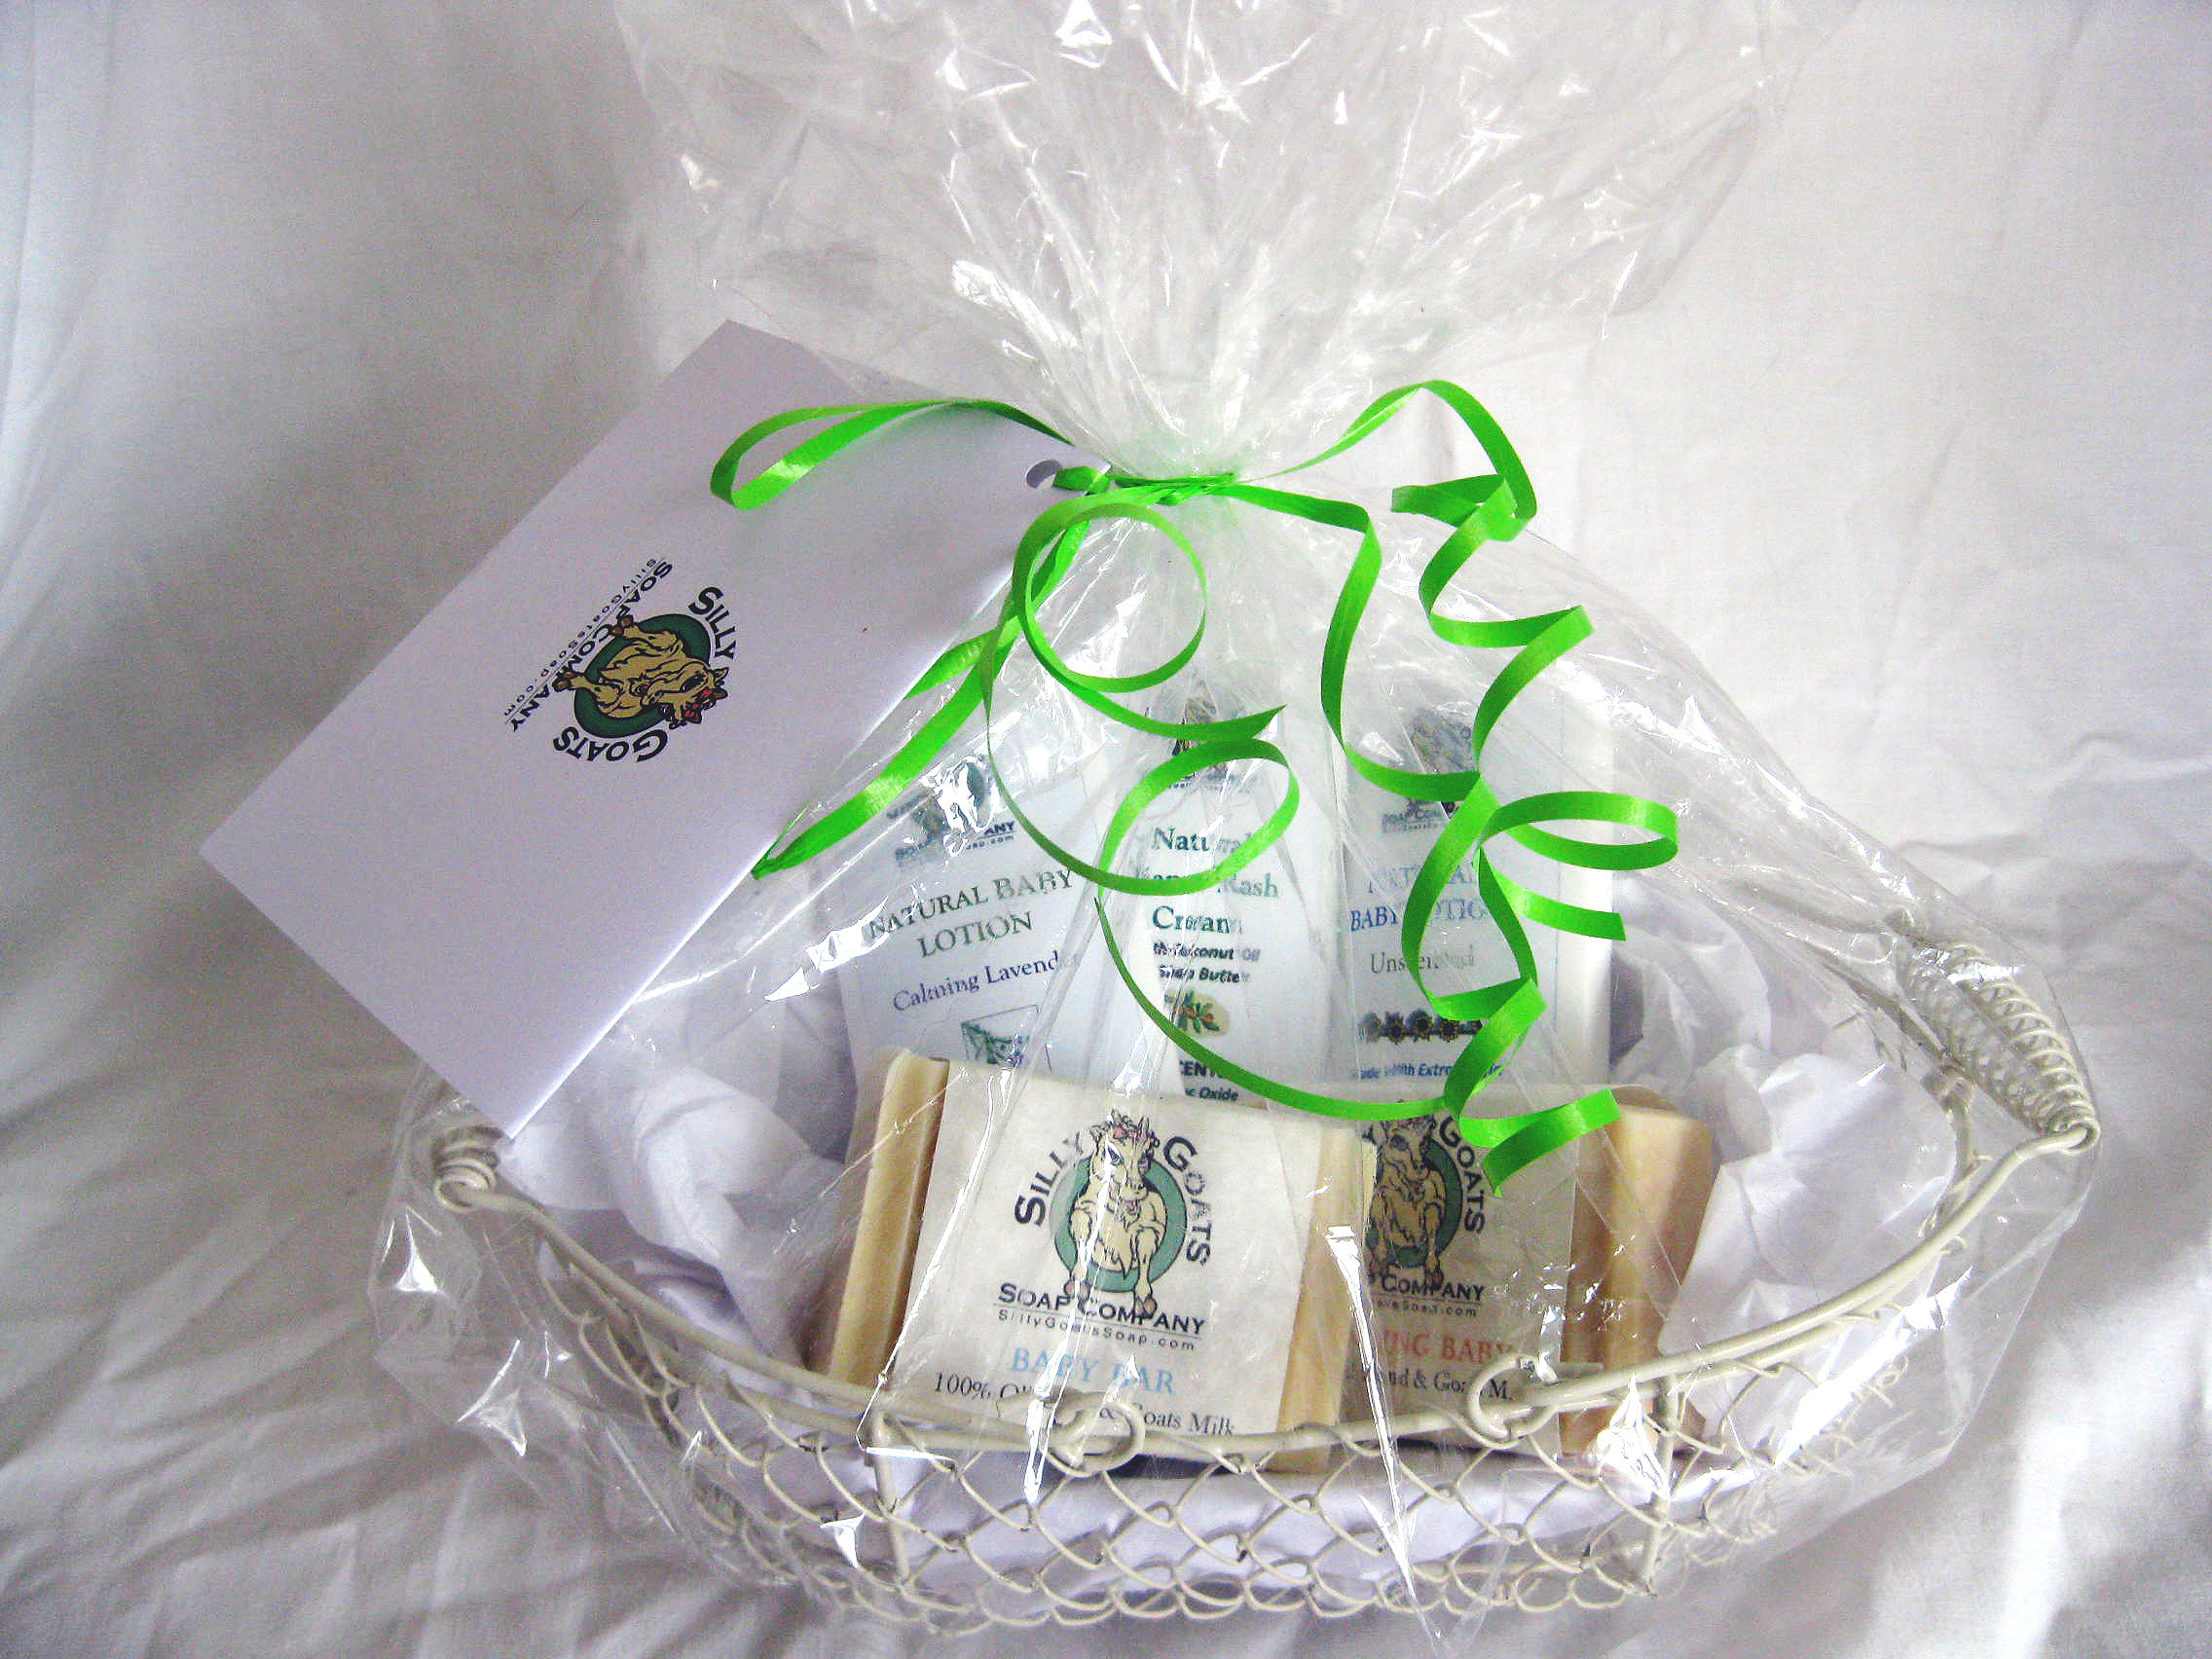 Baby Gift Basket Contents : Baby gift basket silly goats soap company